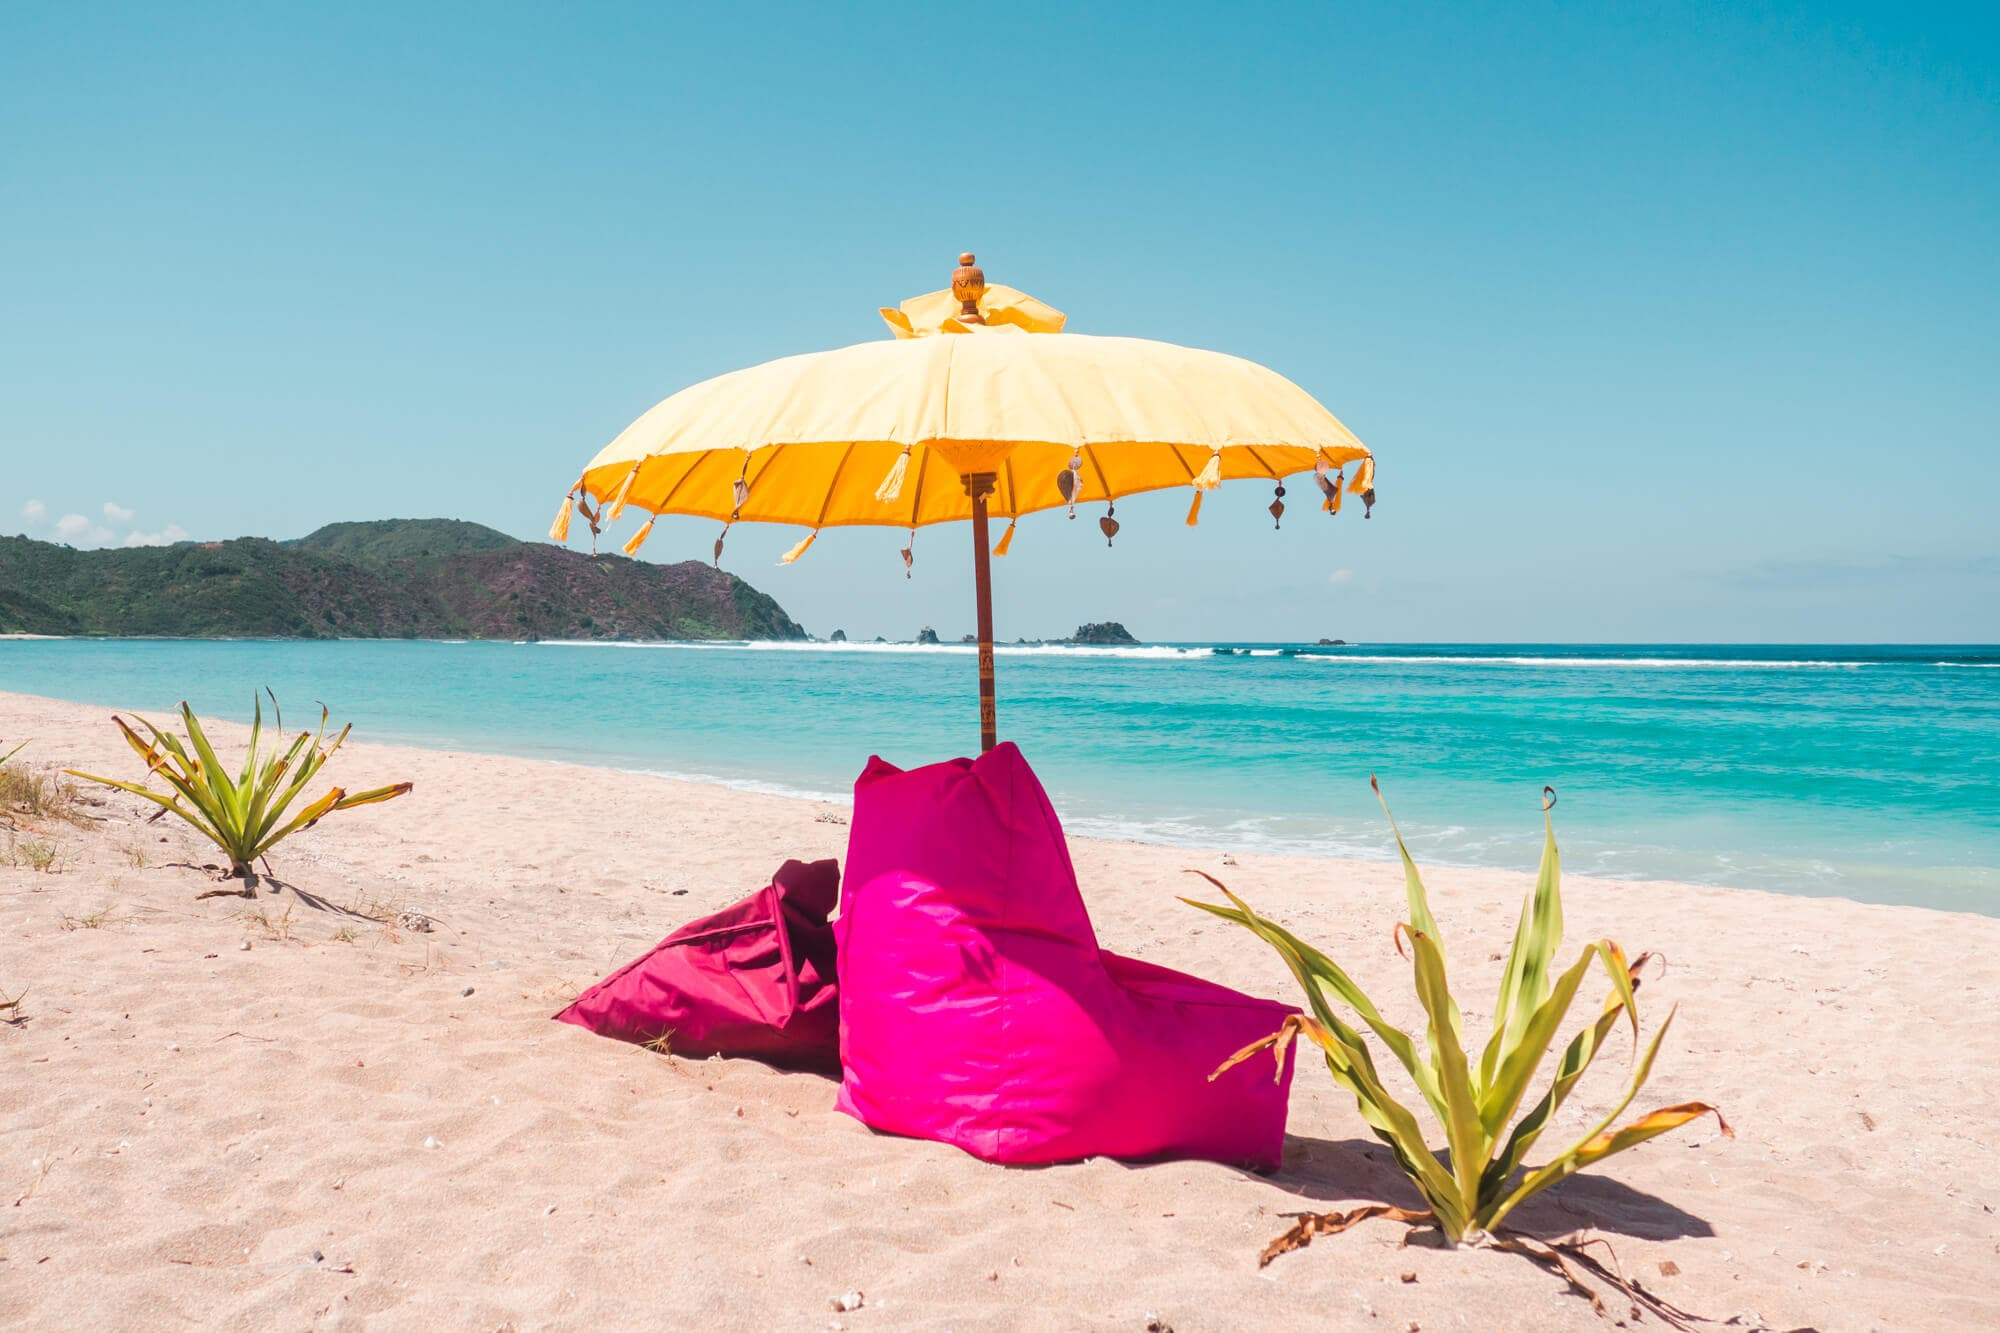 Top 5 things to do in Lombok - Spend the day at Lancing Beach #Lombok